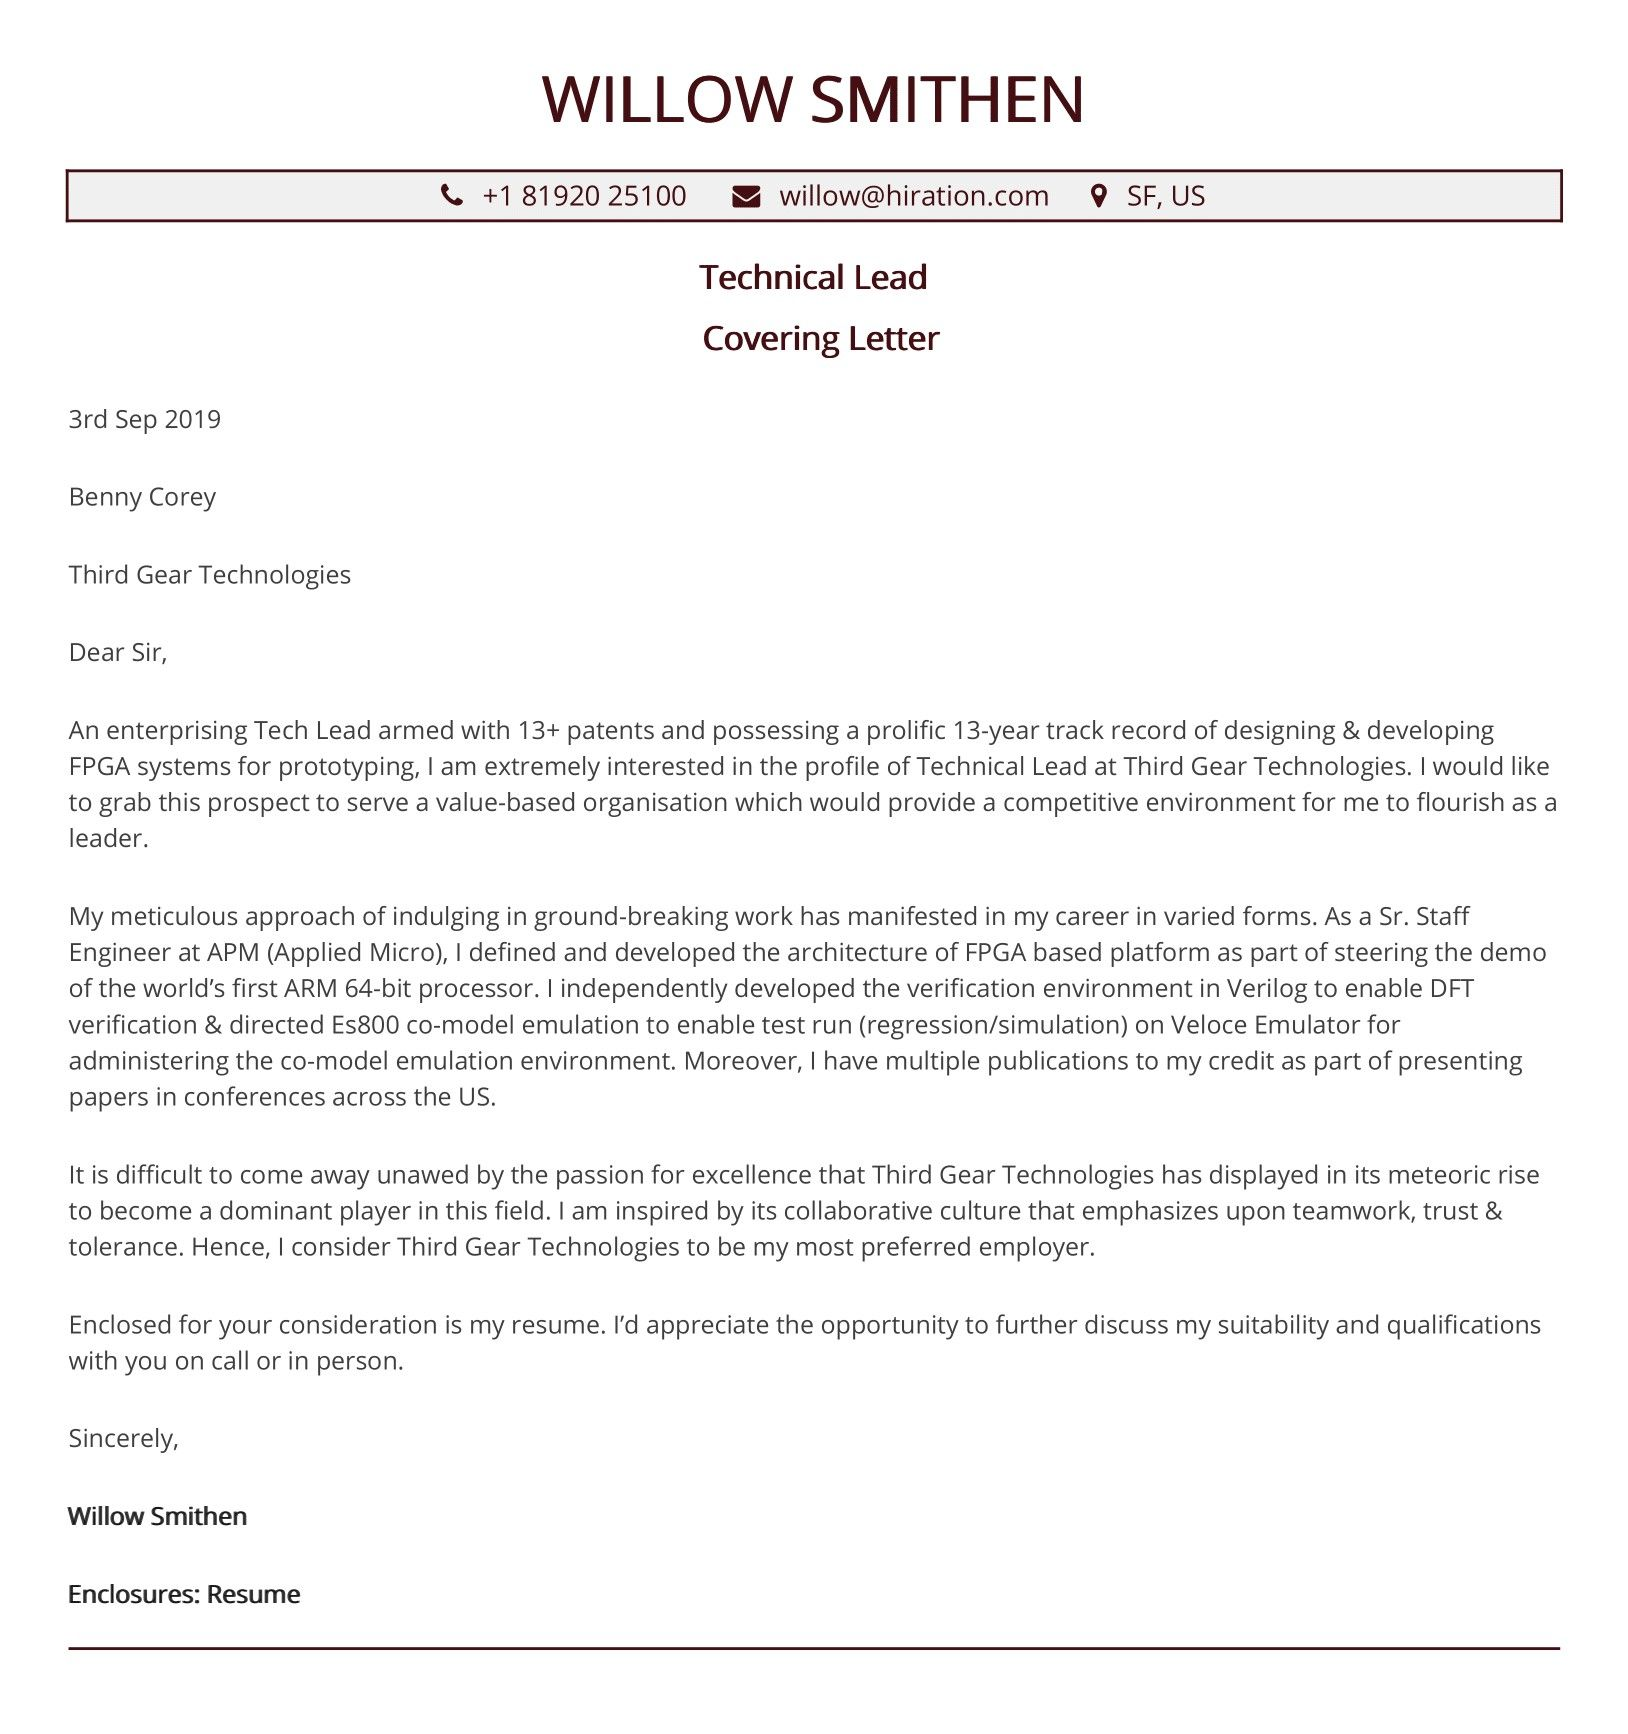 20+ Cover Letter Examples for your Resume in 2020